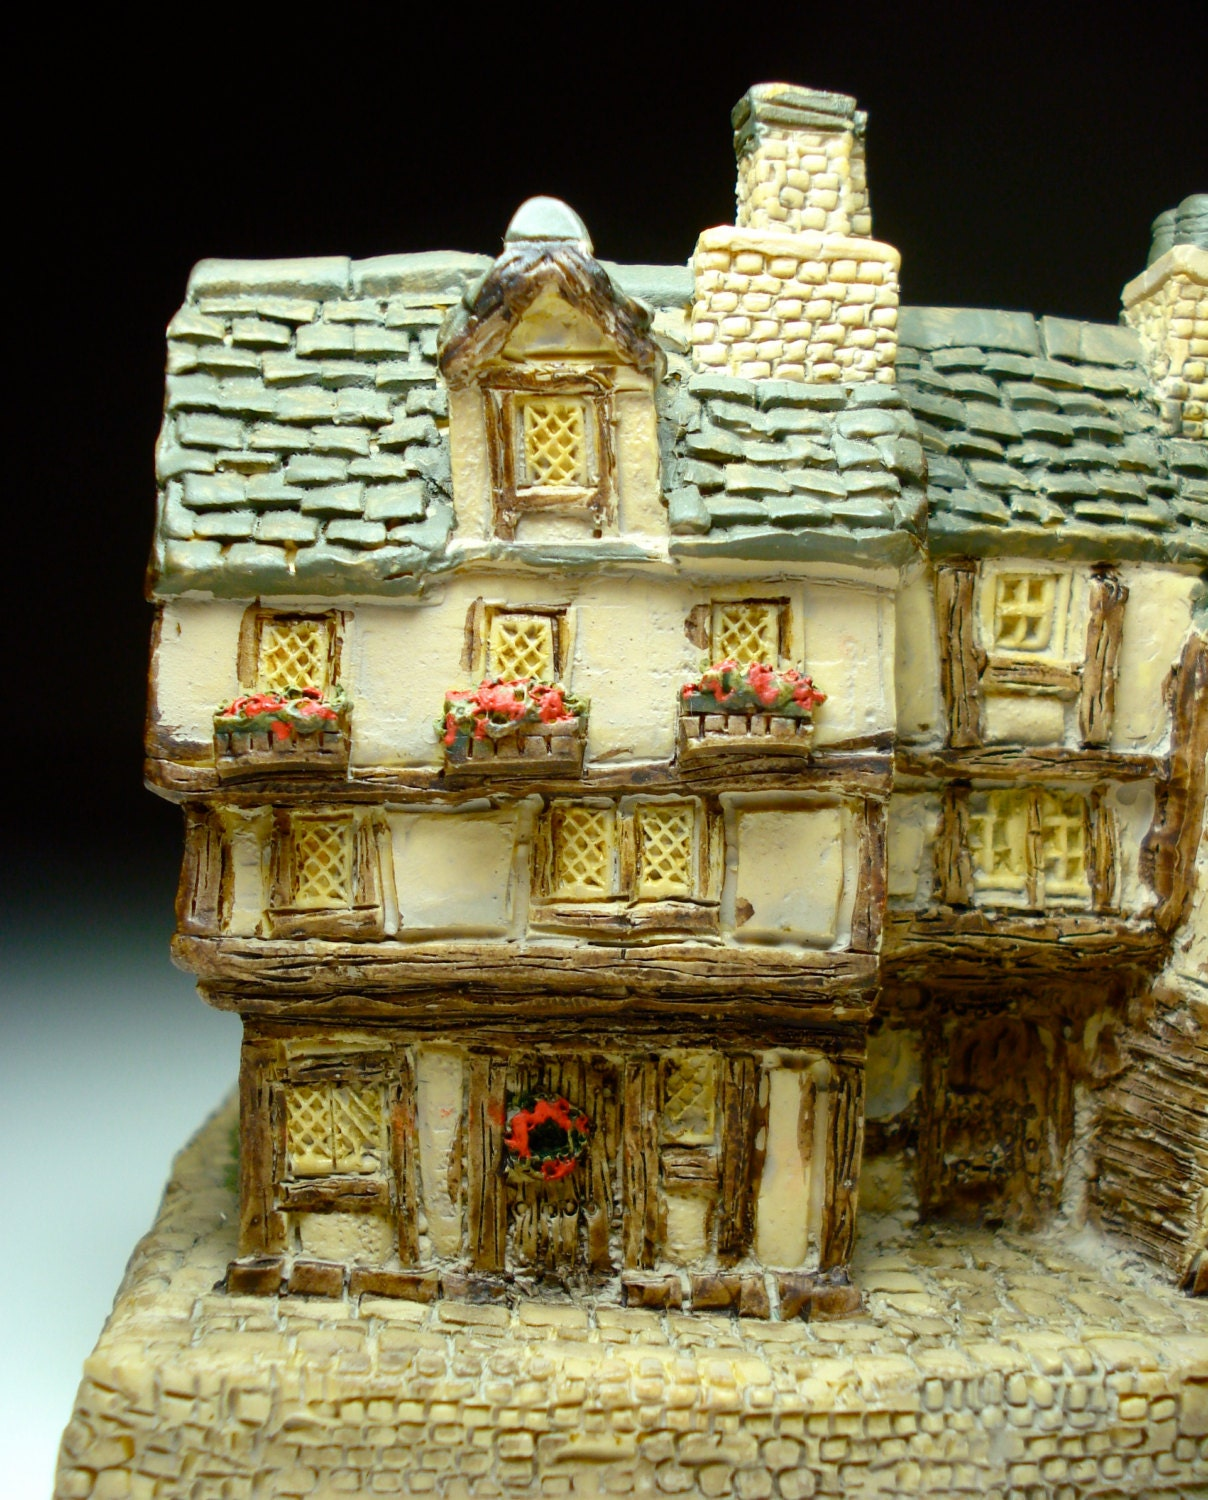 Tiny Tim A Christmas Carol: A Christmas Carol Miniature Tiny Tim's Home By